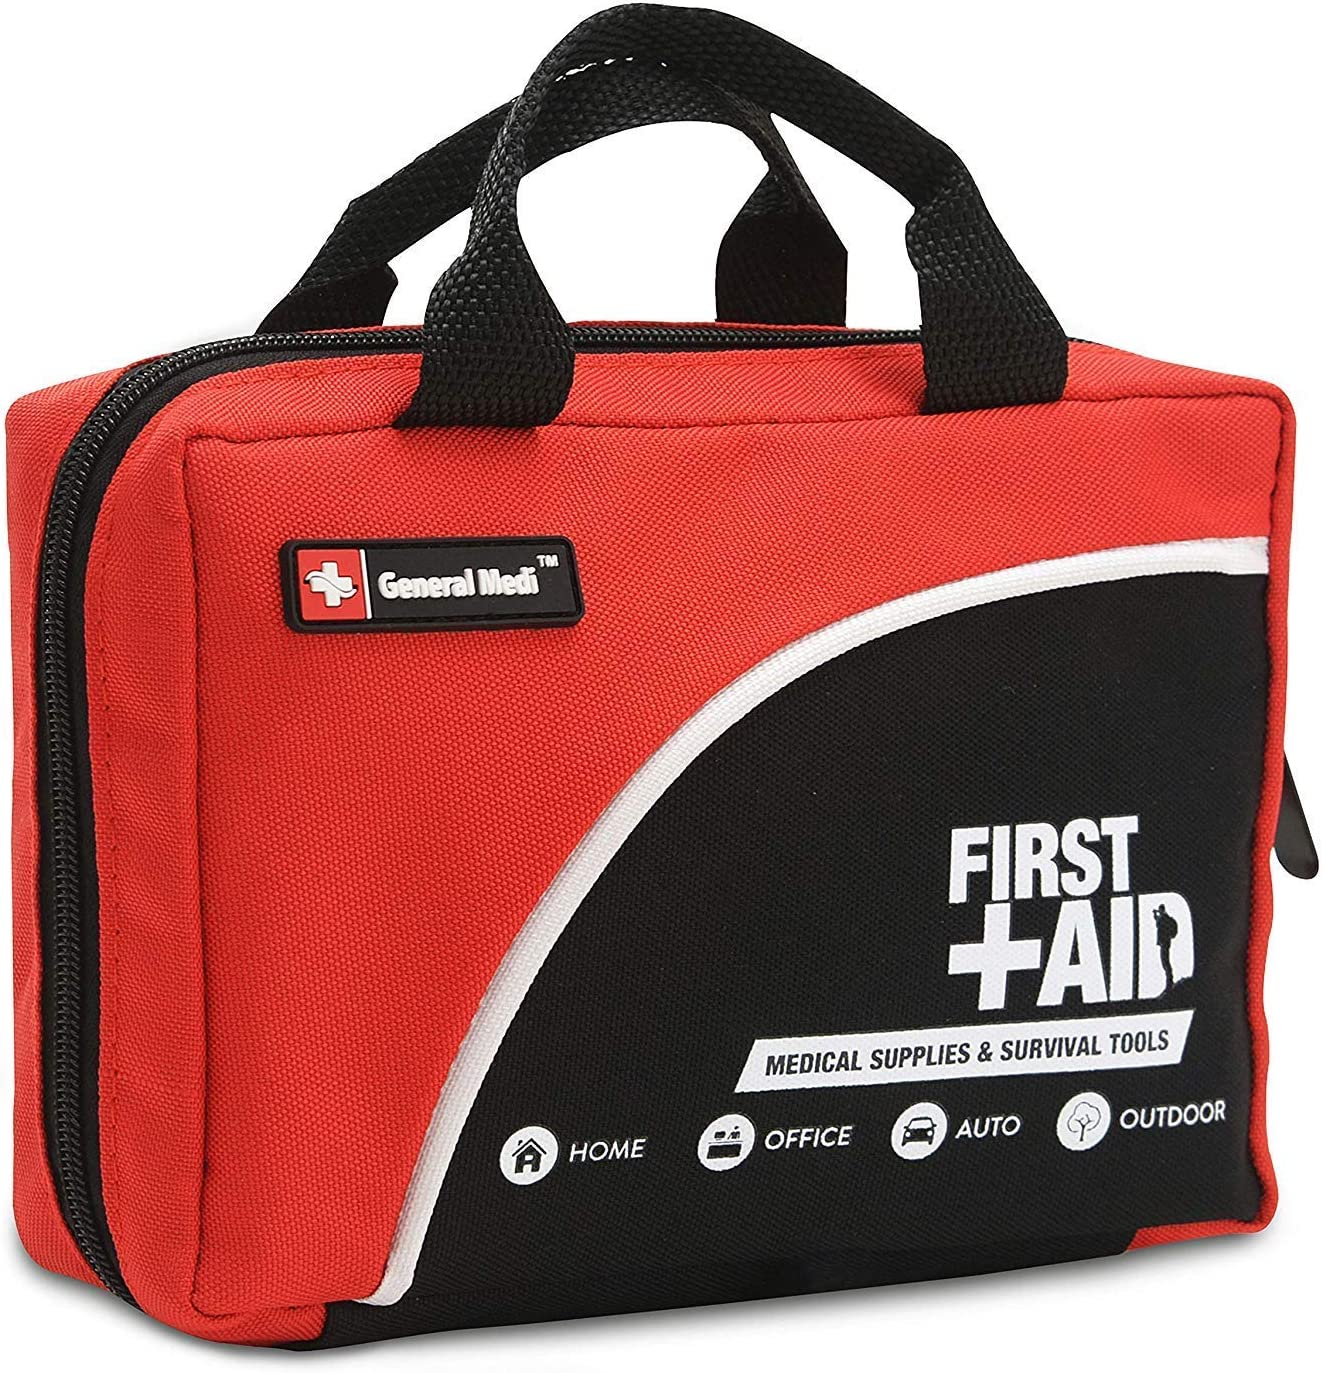 First Aid Kit 160 Pieces Compact And Lightweight Including Cold Ice Pack Emergency Blanket Moleskin Pad Perfect For Travel Home Office Car Camping Workplace Health Personal Care Amazon Com